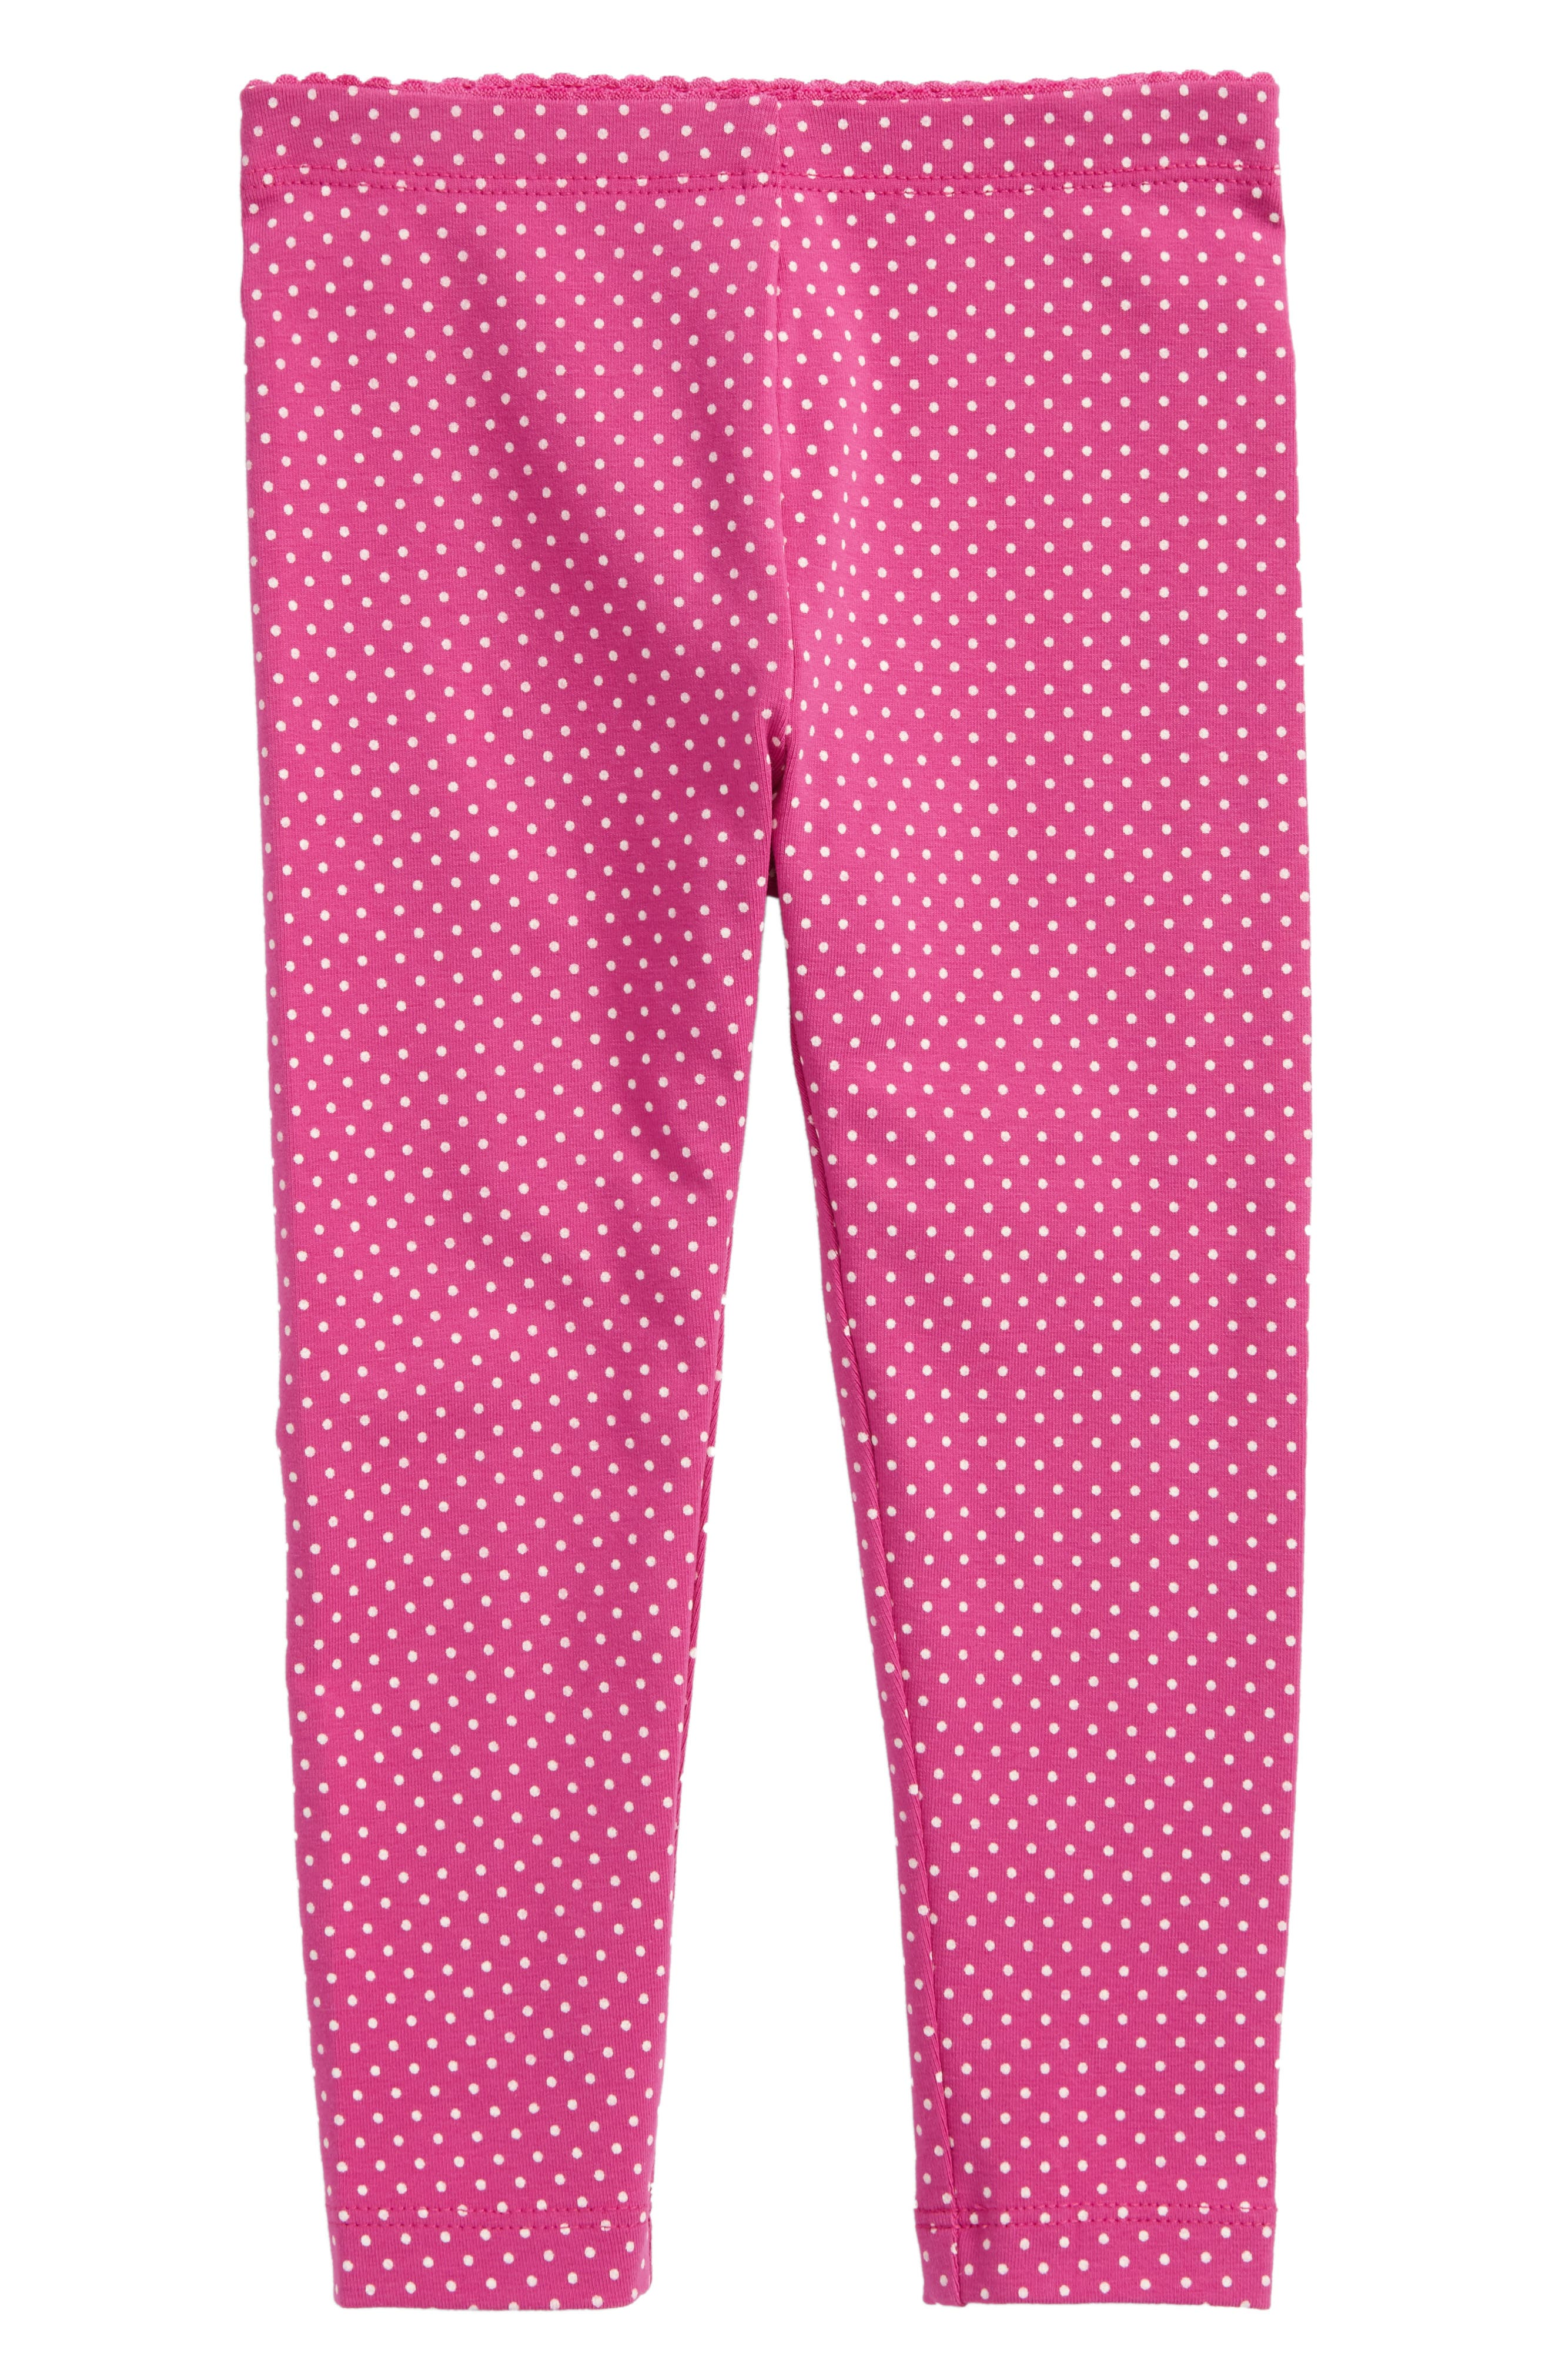 Tea Collection Pin Dot Leggings (Baby Girls)